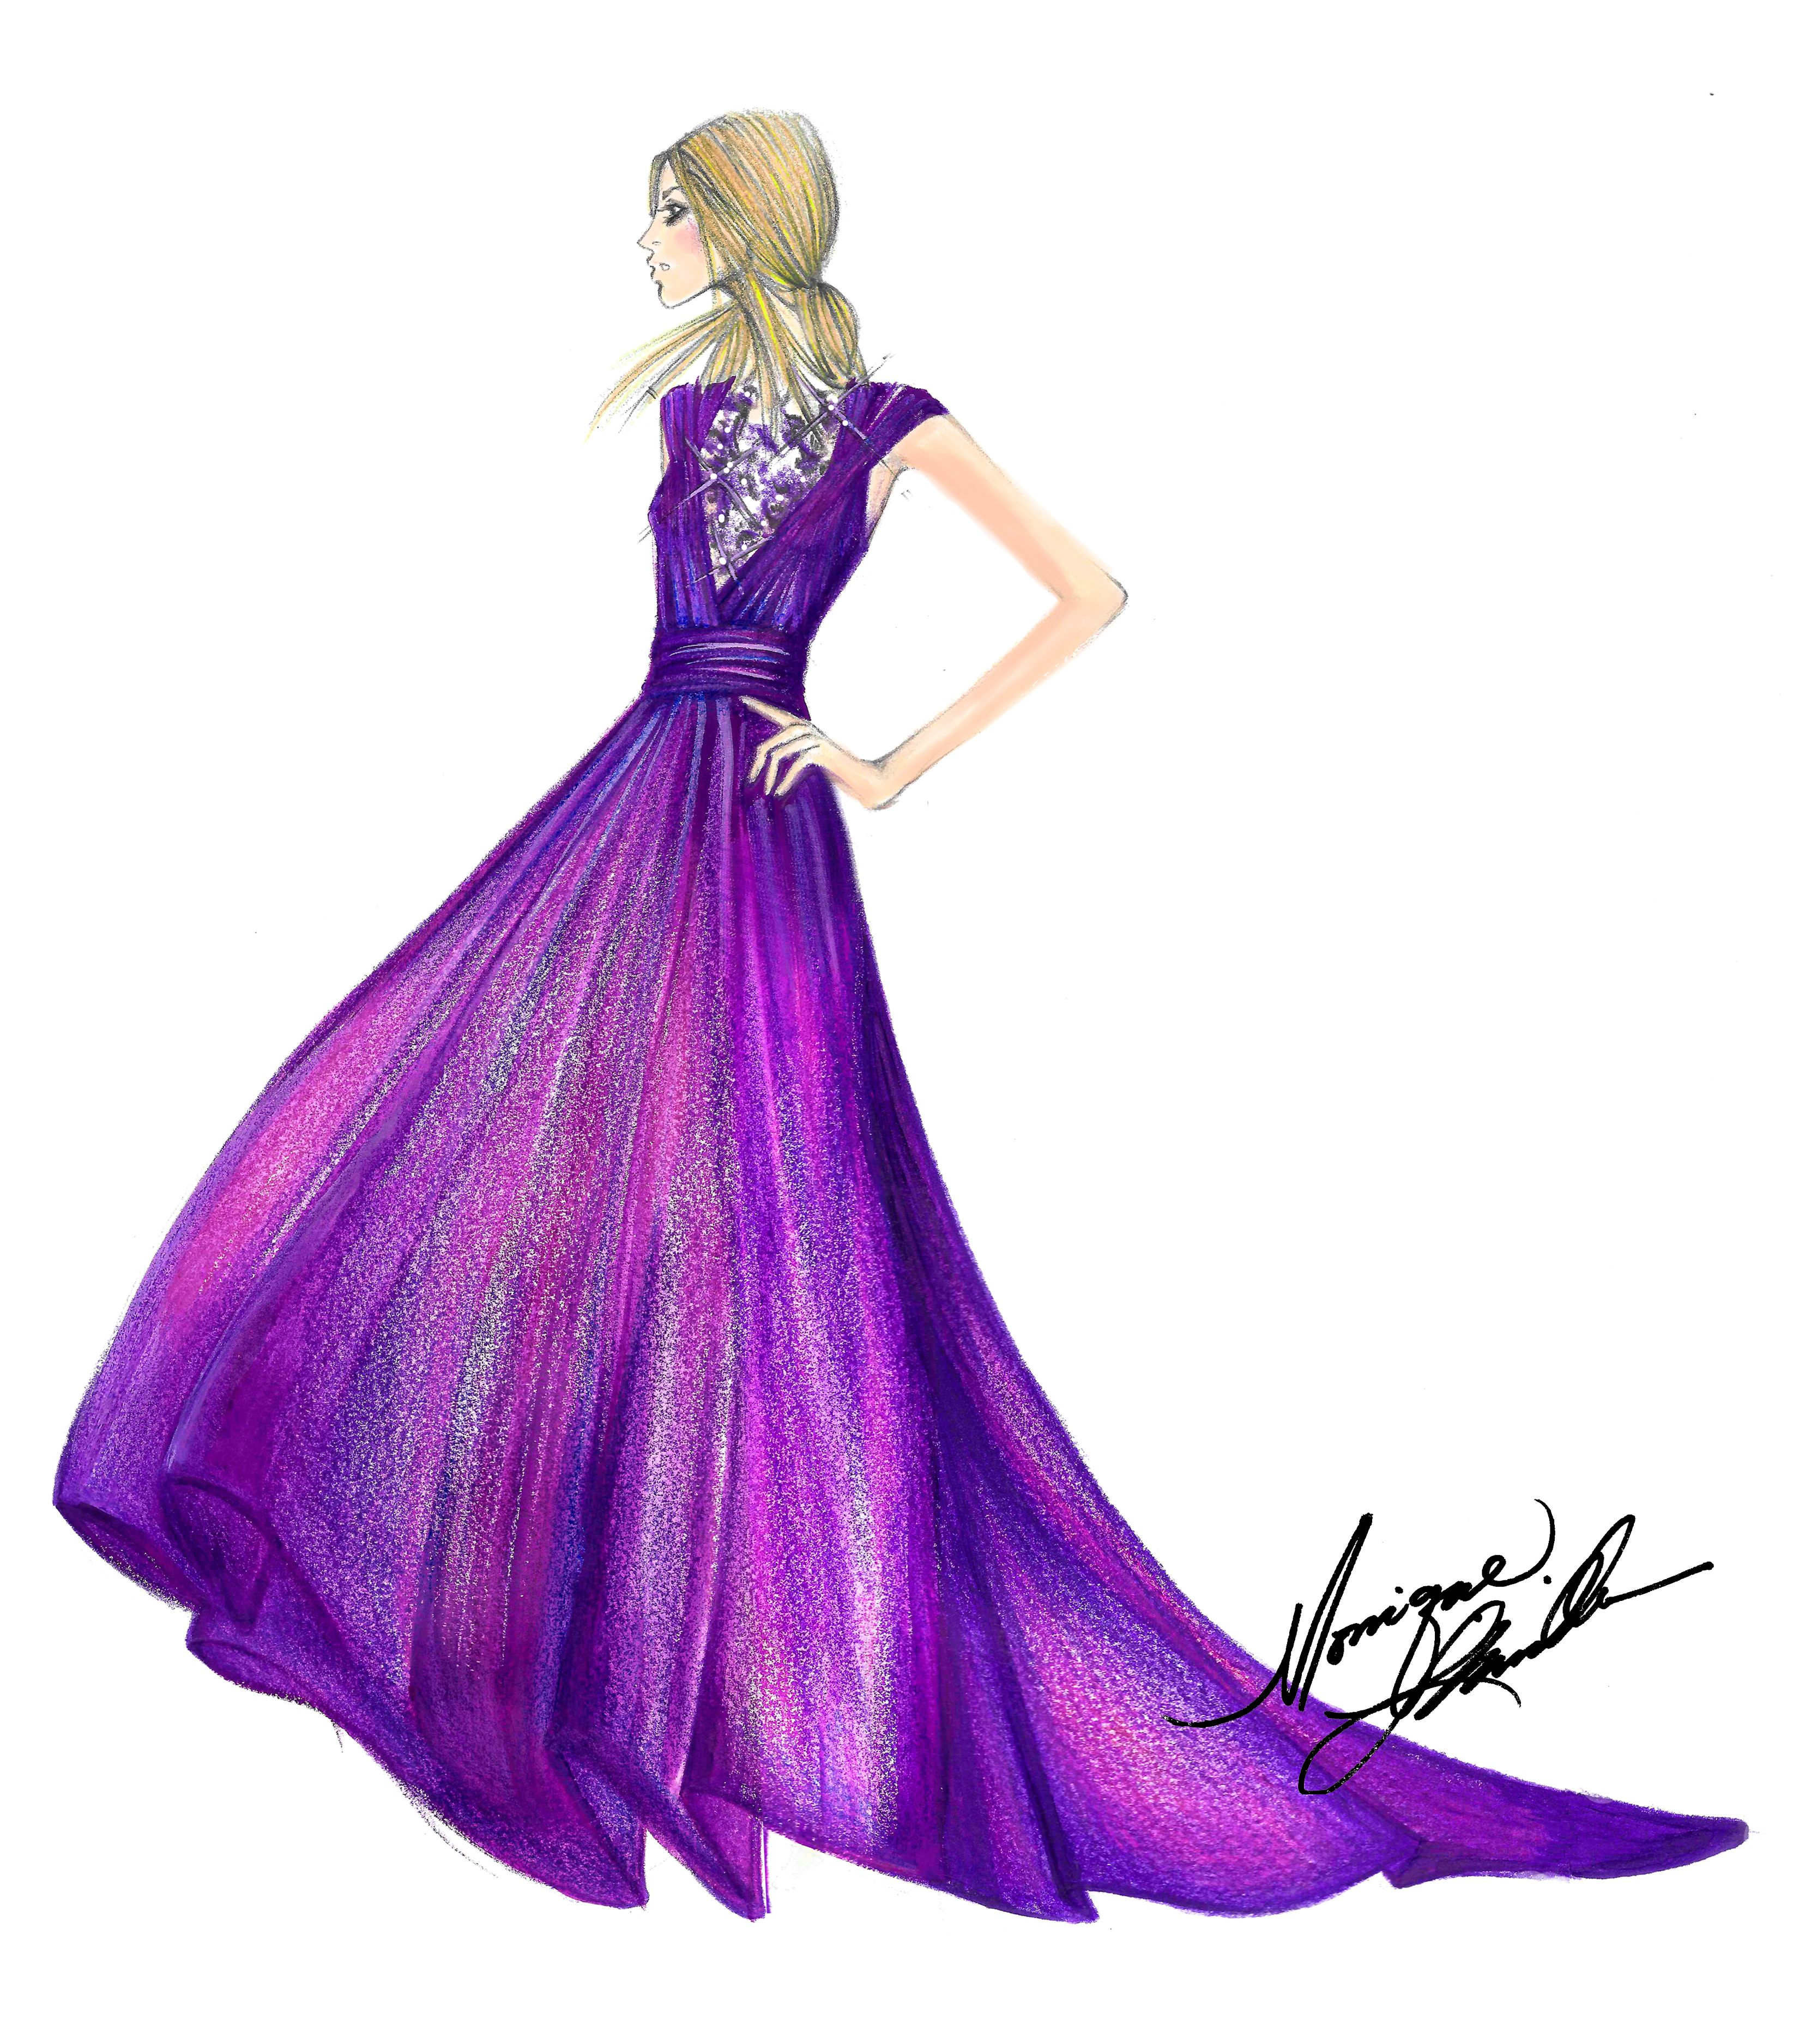 Monique Lhuillier Fall 2015 RTW Collection sketch